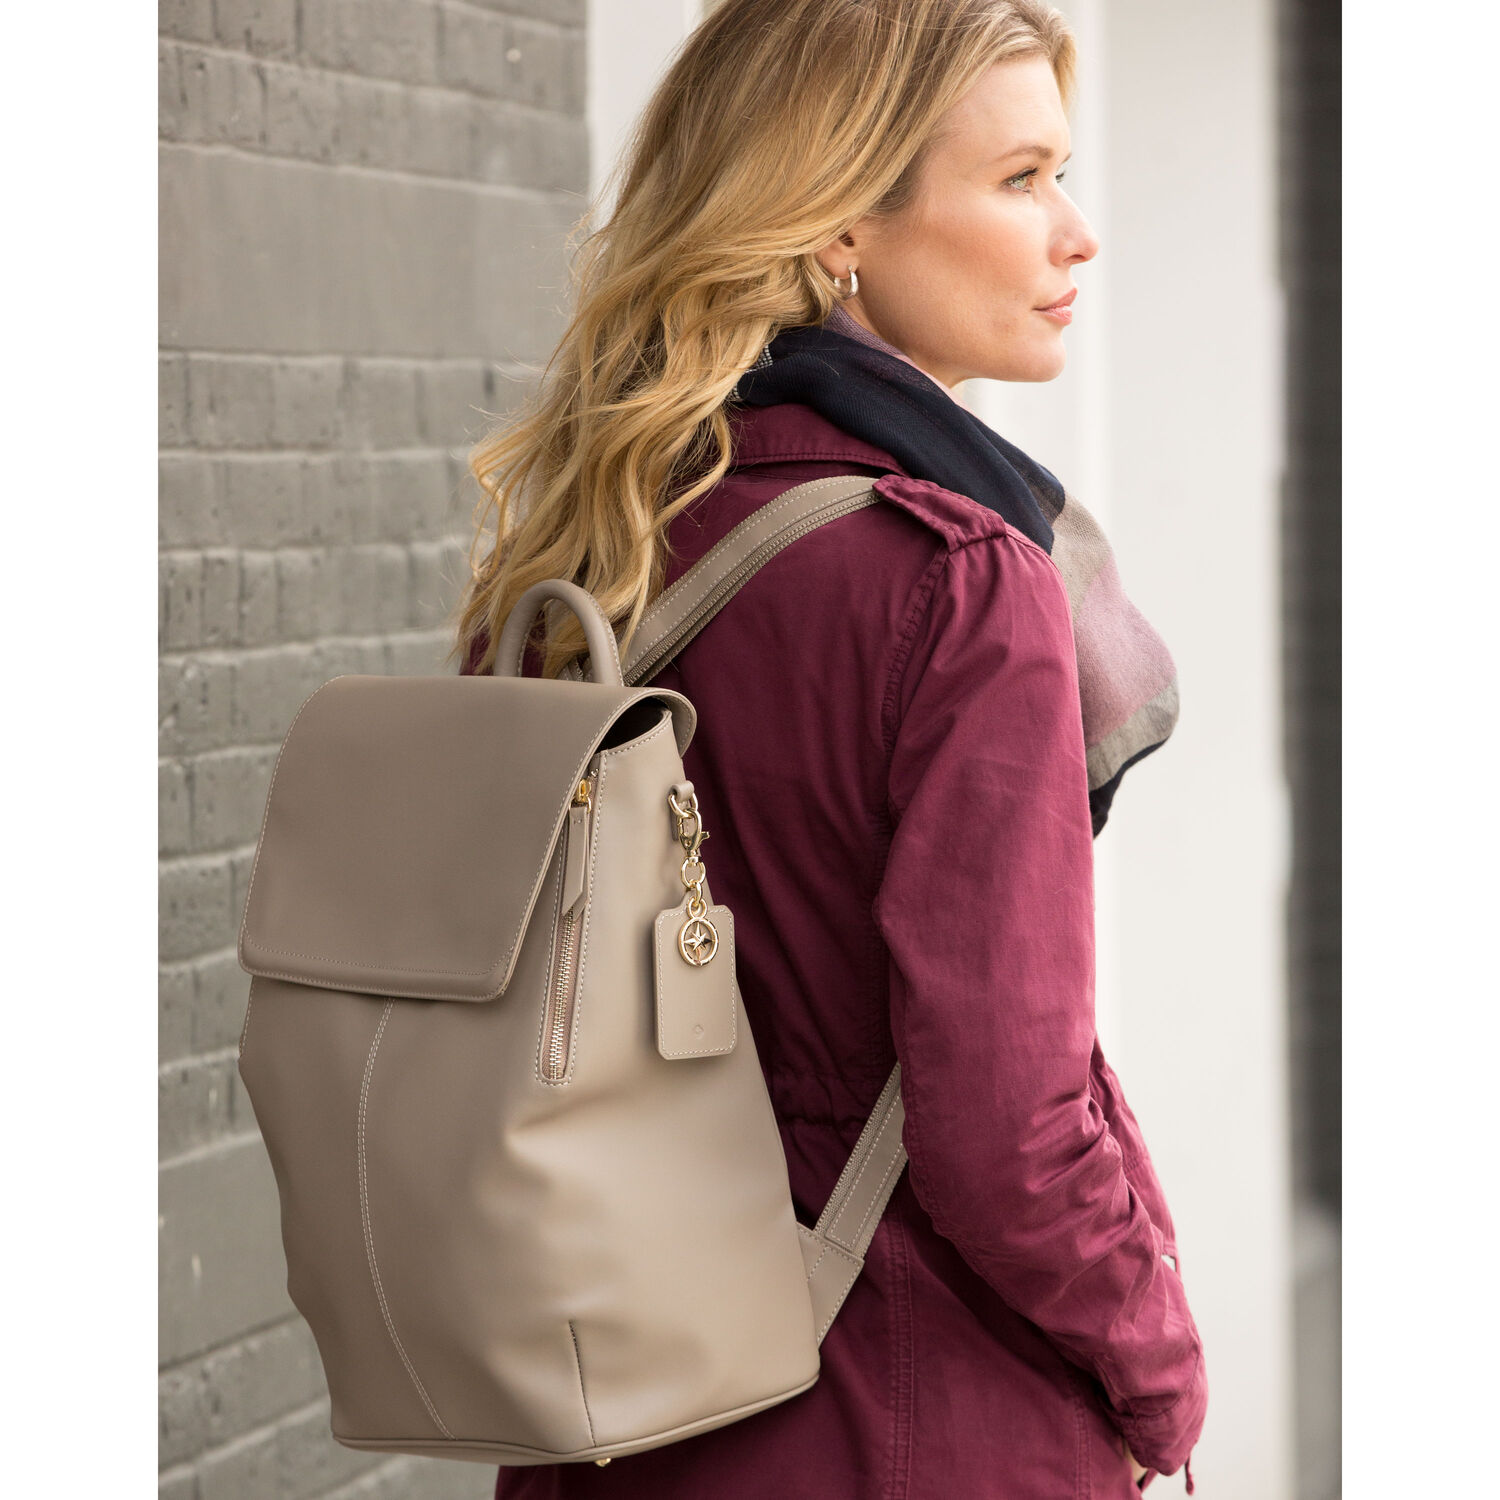 915e06317536 Samsonite Ladies Leather Hamptons Backpack in the color Light Grey.